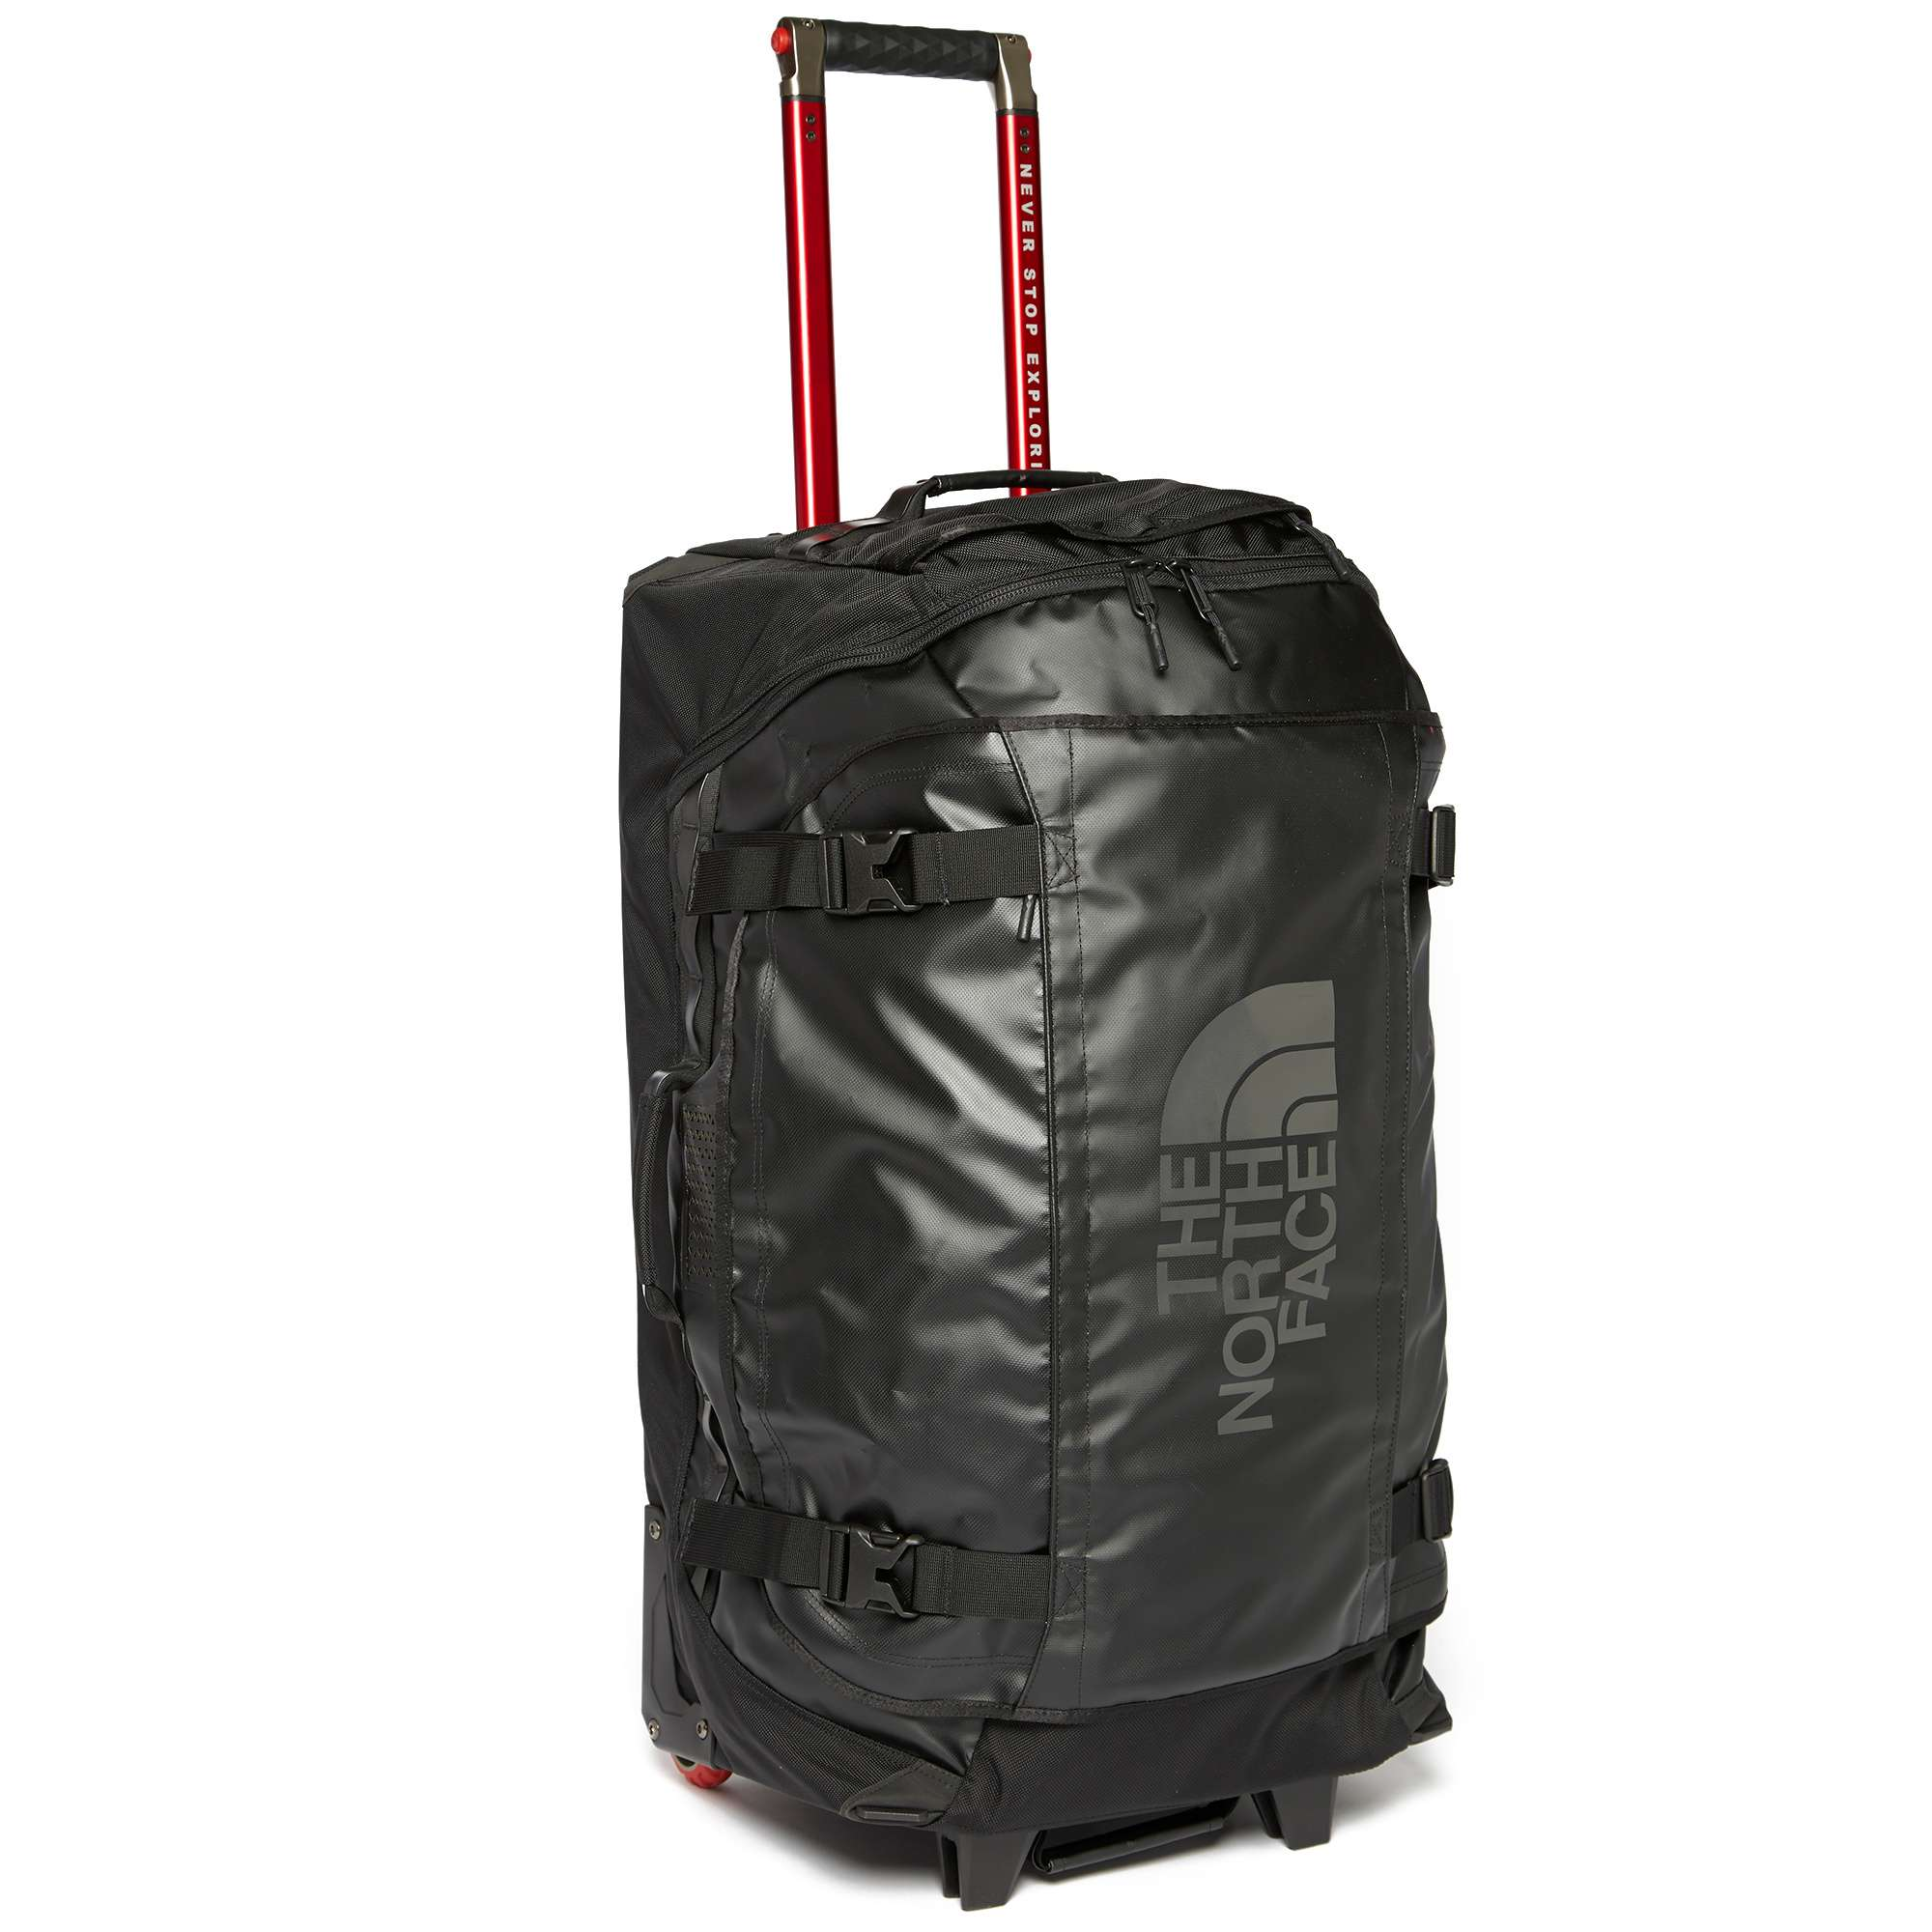 "THE NORTH FACE Rolling Thunder 30"" Travel Case"